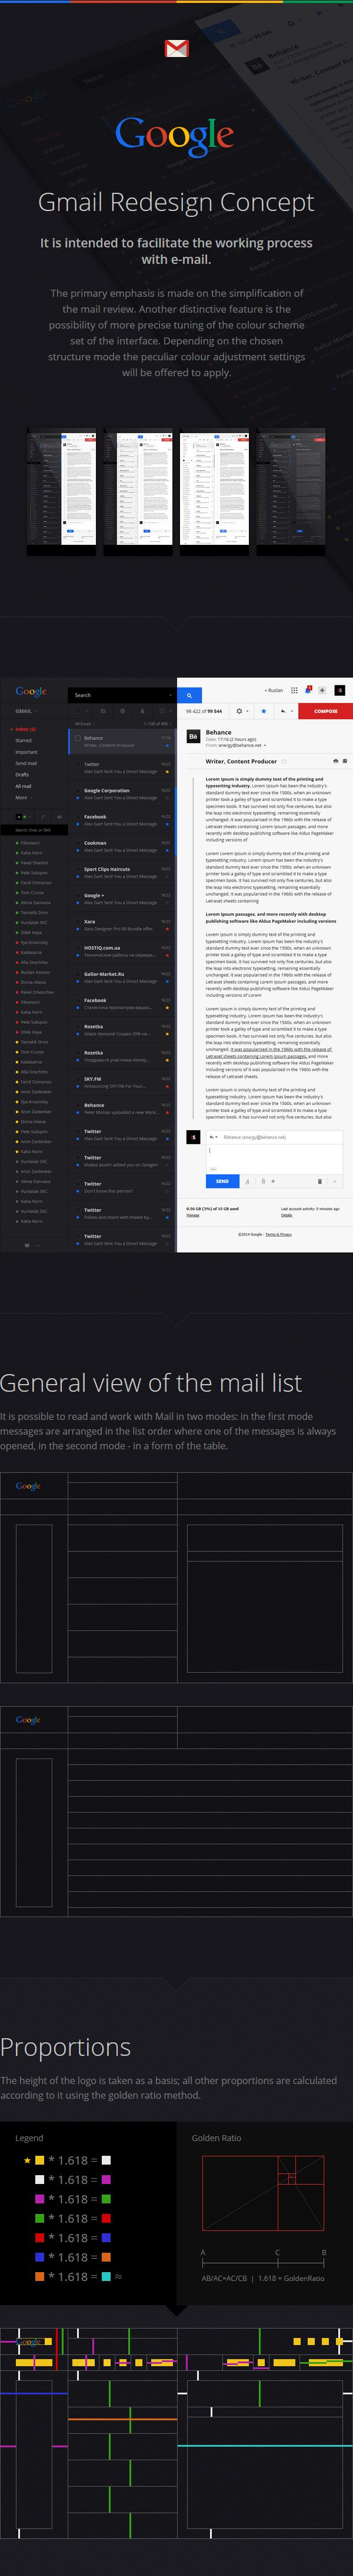 Gmail Redesign Concept by Ruslan Aliev, via Behance #appdesign #redesign